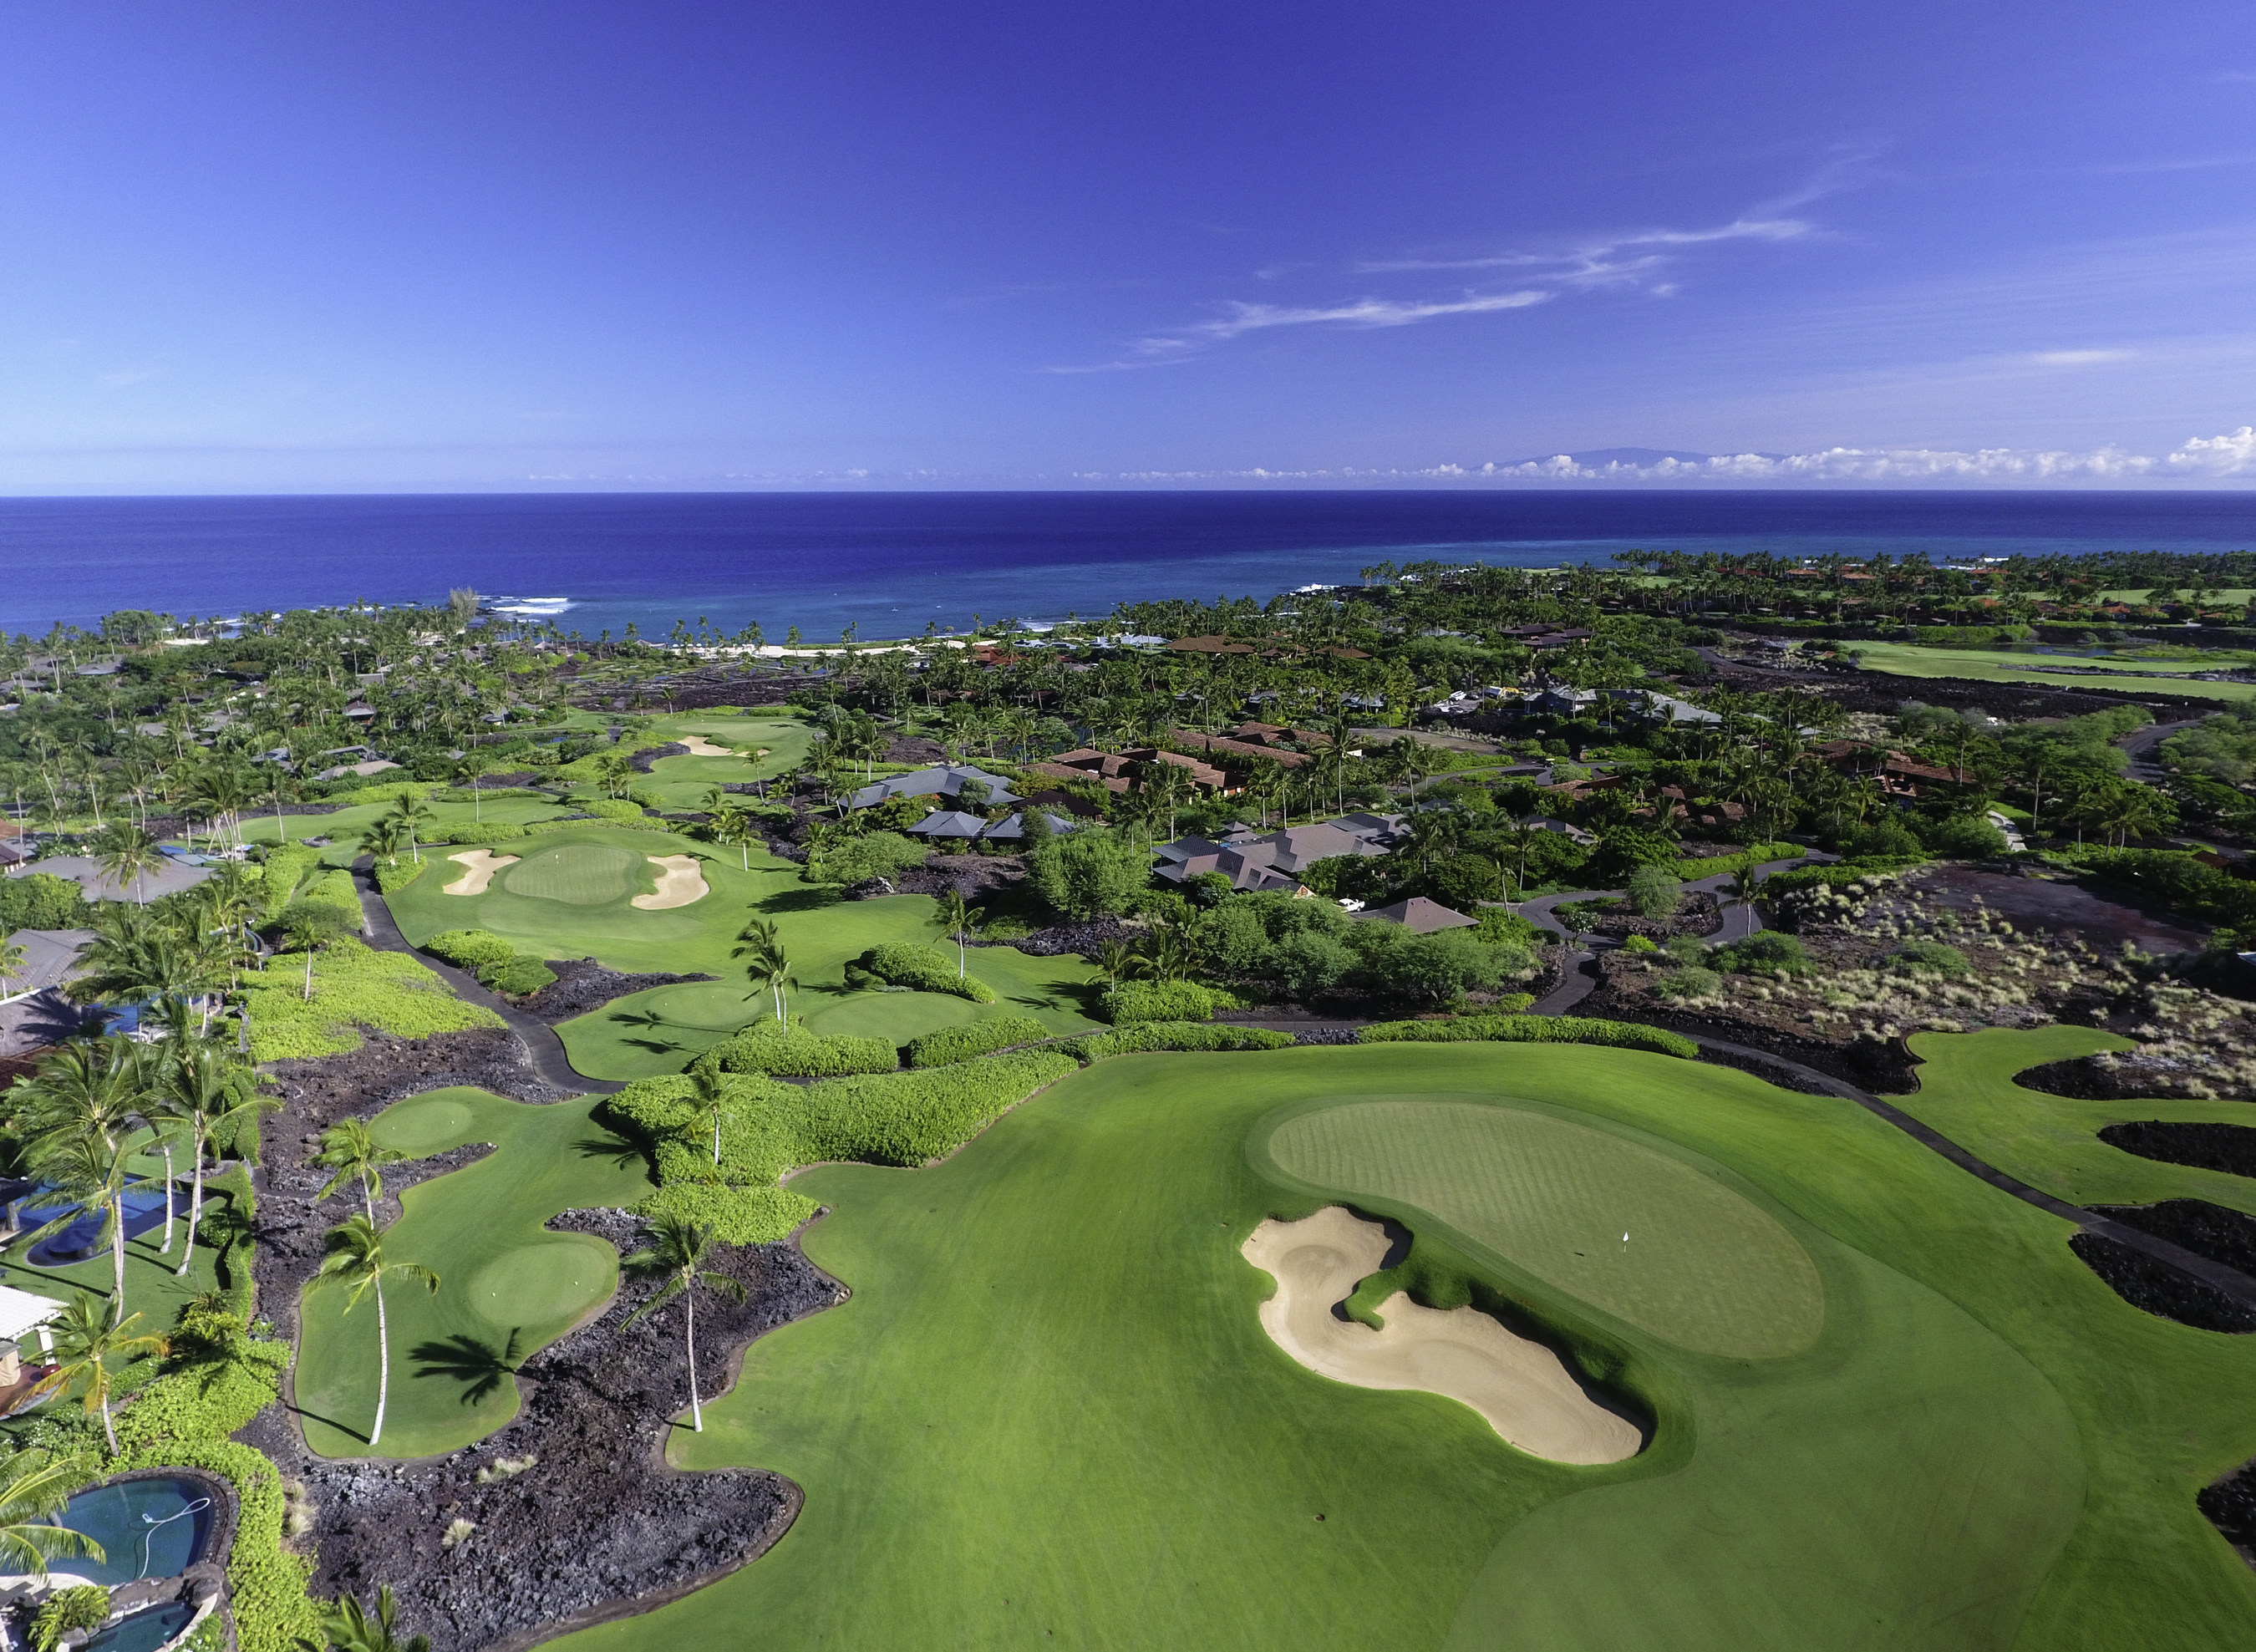 Kukio Golf and Beach Club is a private, residential equity club located on the Big Island of Hawaii. Club membership is exclusive only to residents ofKukio,Maniniowali, and our sister propertyKaupulehu. The Kukio Golf and Beach Club includes a full service clubhouse, spa and fitness facility, dining pavilion, beach bar, 10-hole Tom Fazio-designed Short Course, and Outdoor Pursuits Ocean Sports Program. Up mauka (mountain), sits the Kukio 18-Hole Tom Fazio-designed Championship Golf Course. The Kukio...